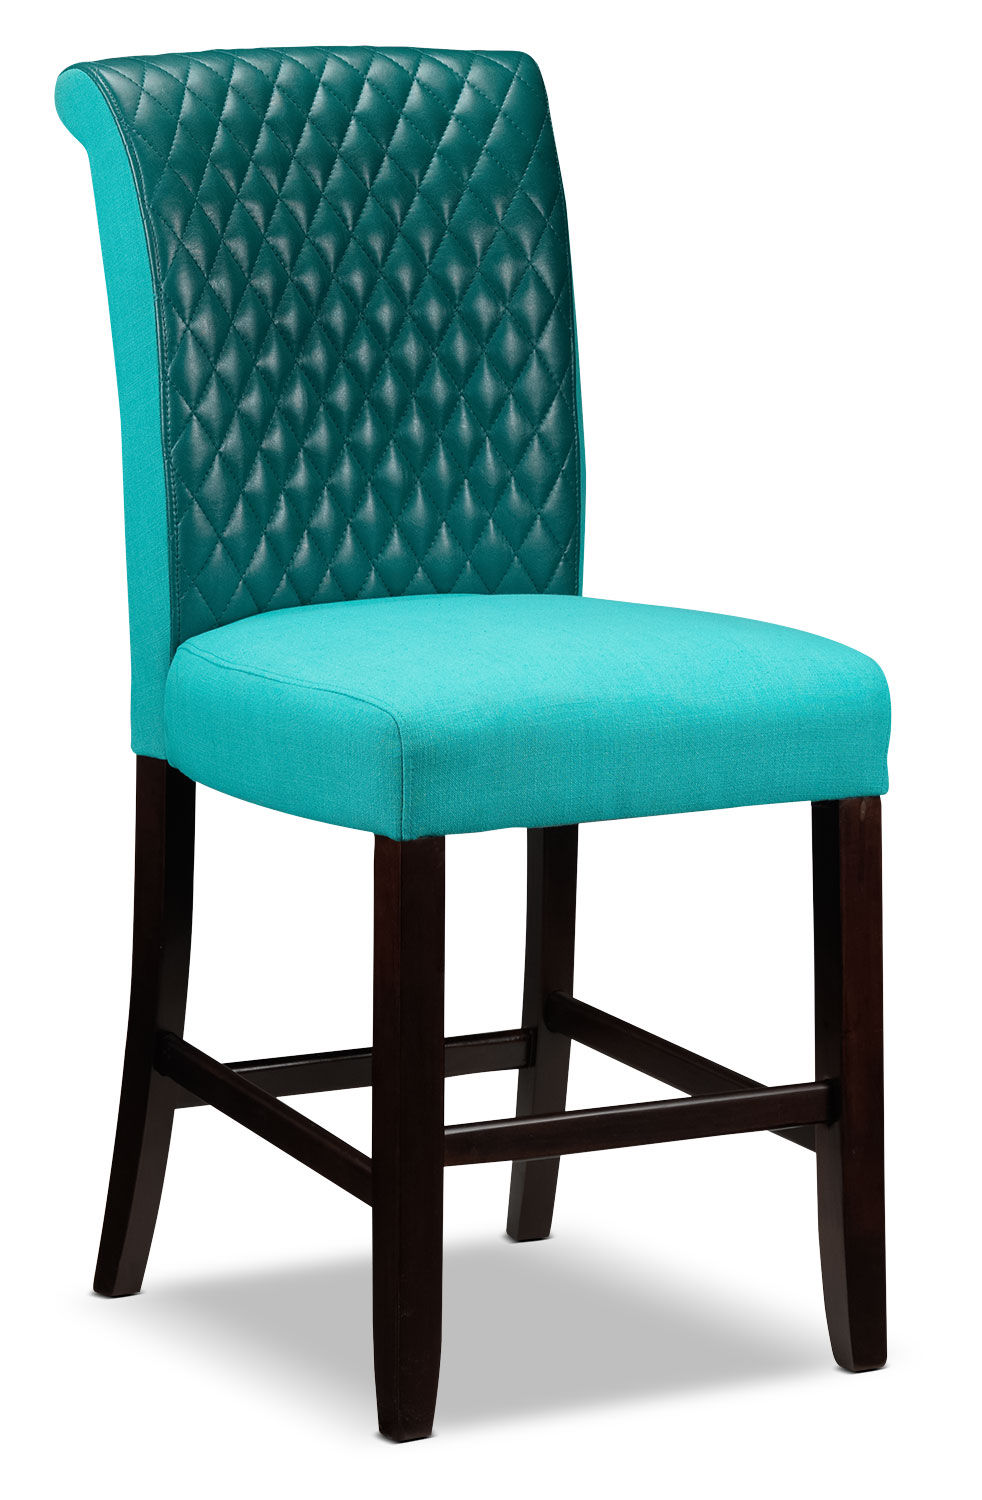 Flora Pub Chair - Teal